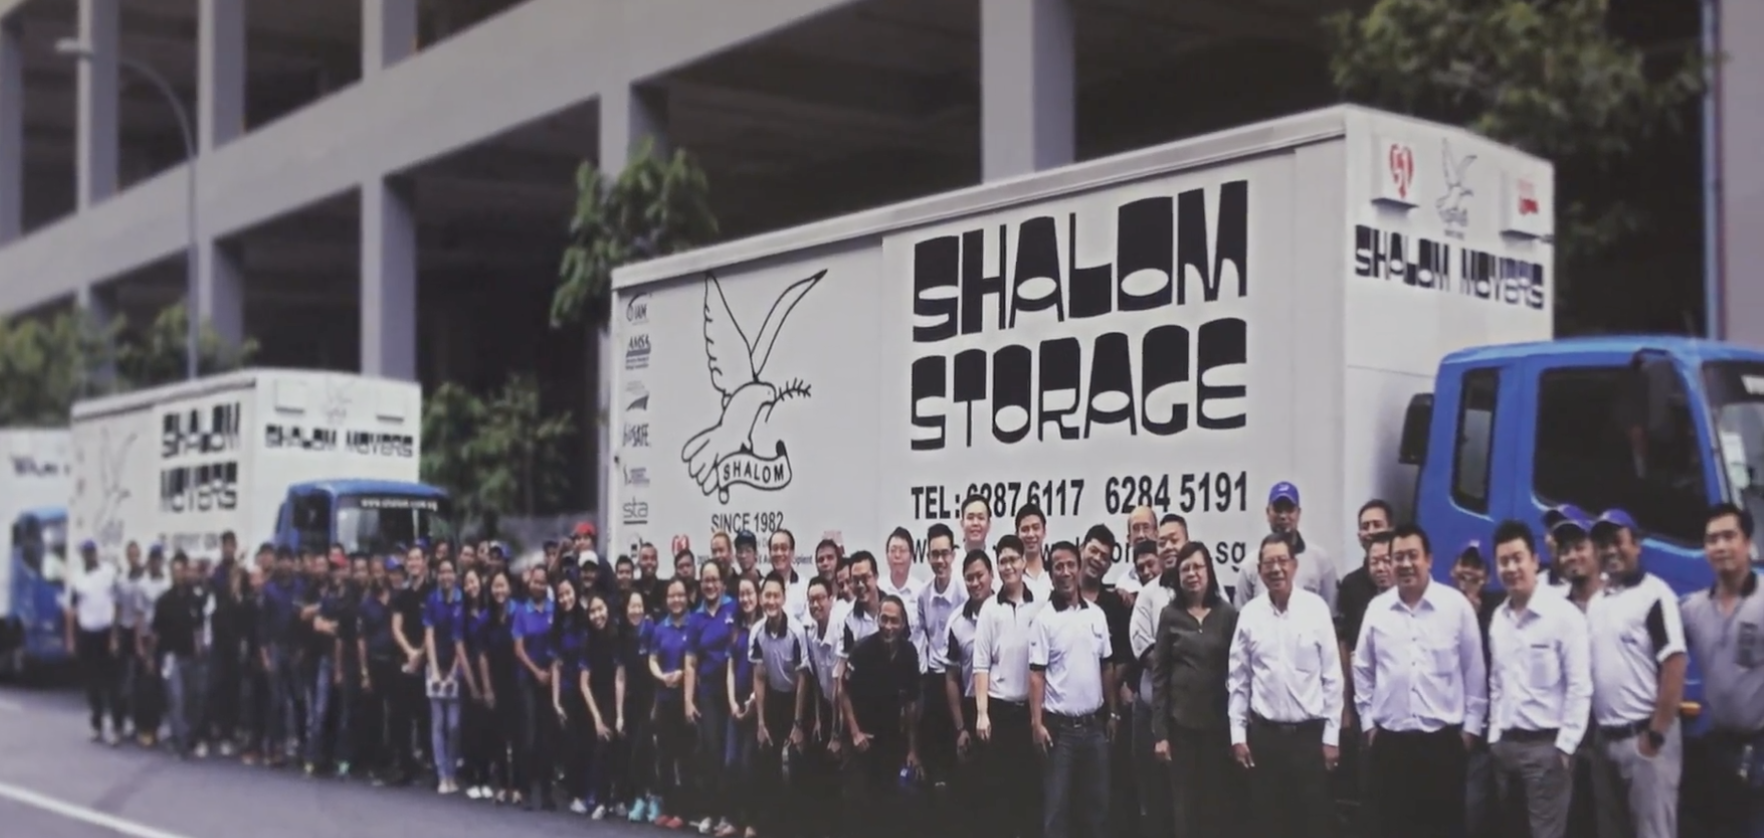 ShalomGroup Photo